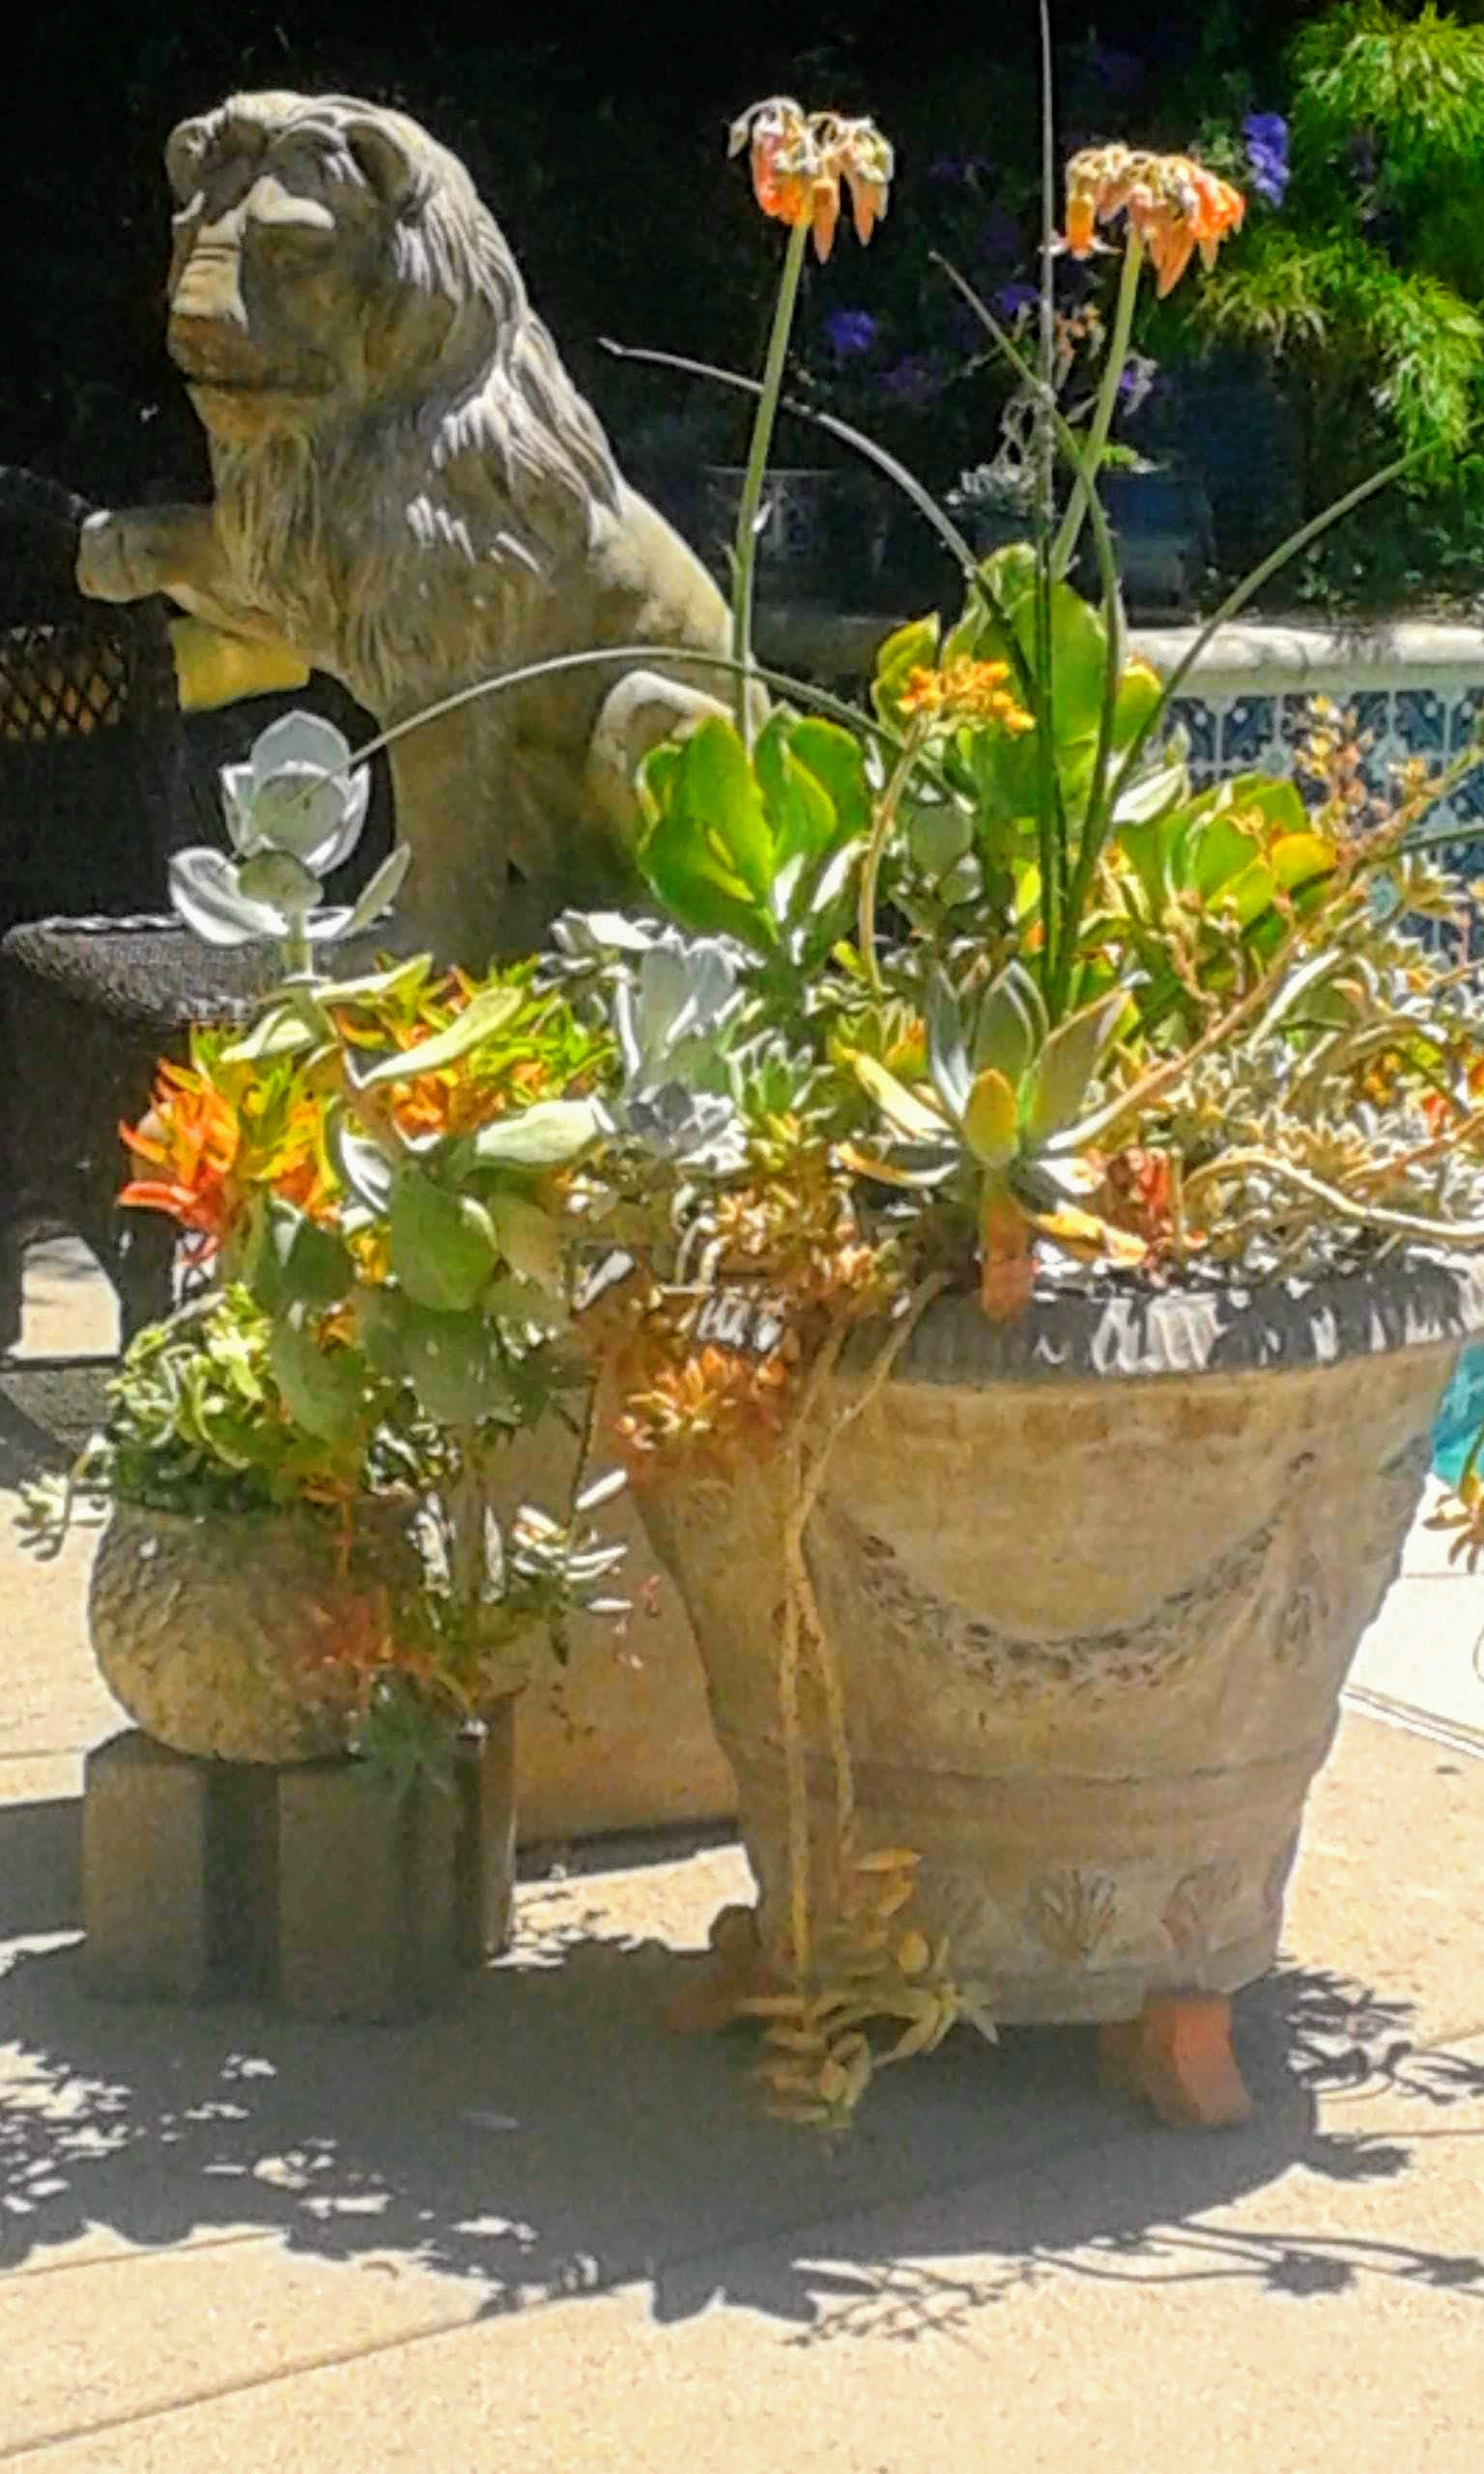 Randy's poolside succulent container garden on 2018-6-26-EFFECTS.jpg